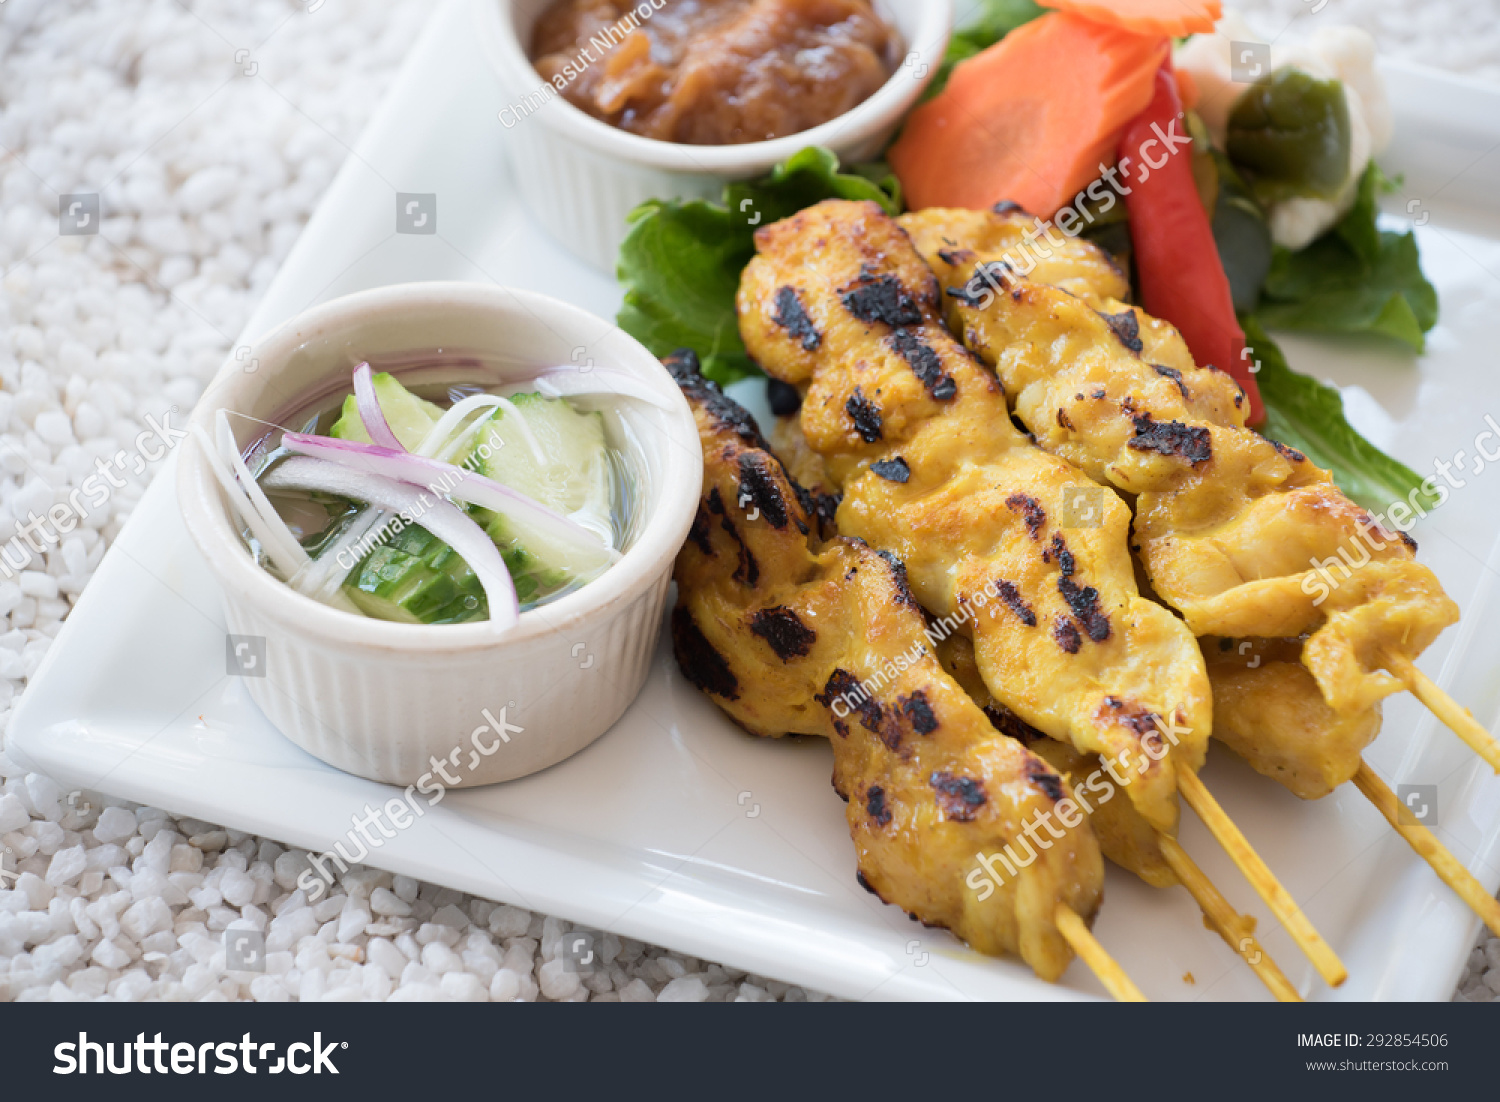 tradition grilled curry marinated chicken or chicken satay stock photo 292854506 shutterstock. Black Bedroom Furniture Sets. Home Design Ideas